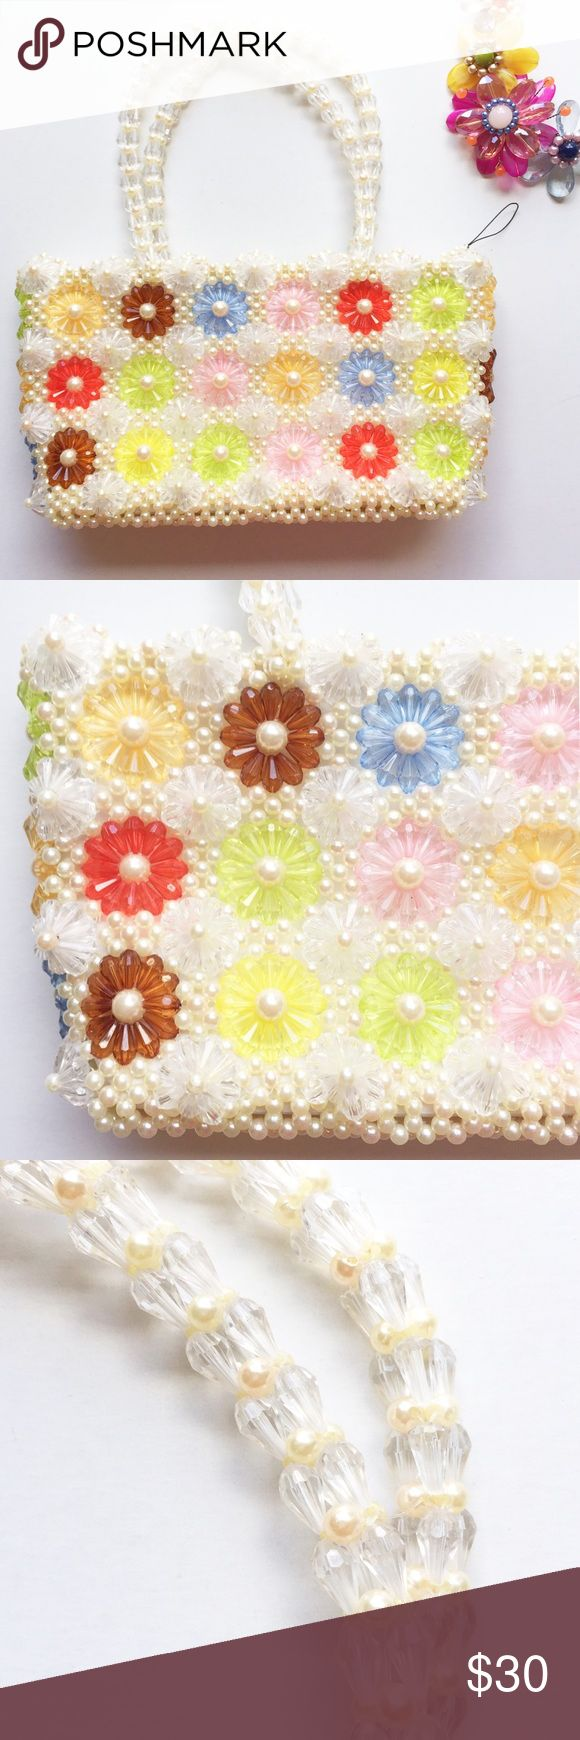 """Beaded Flower Bag 🌸 SO CUTE! Beaded flower handbag. Probably vintage and from Japan. 6""""X11""""x3"""". Excellent condition. Zipper pull replaced. Please feel free to ask any questions prior to purchase. Vintage Bags"""